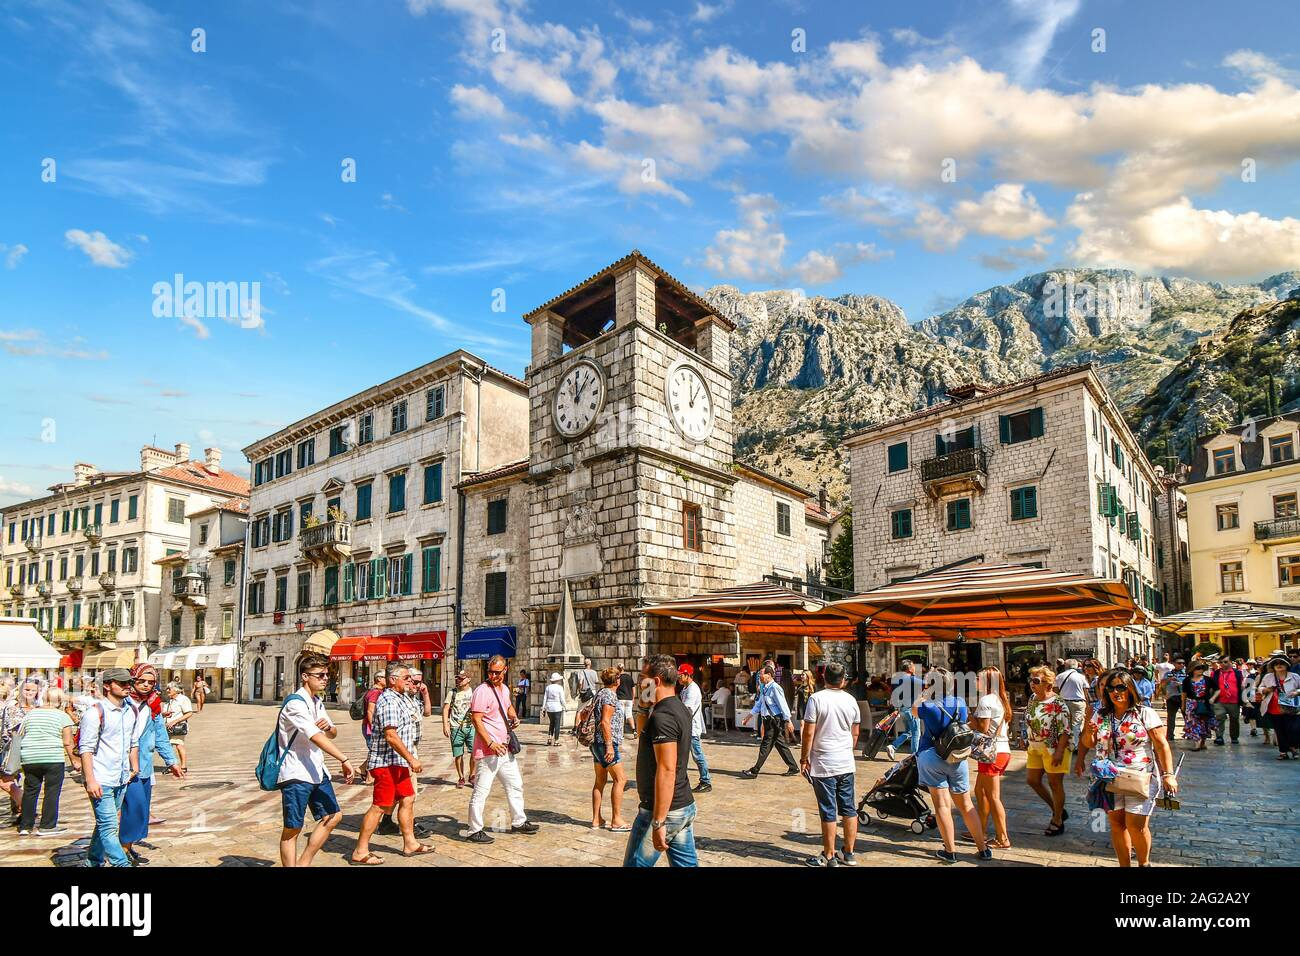 Tourists sightsee, dine at cafes and shop under the clock tower in the Square of the Arms, in the medieval walled city of Kotor, Montenegro Stock Photo